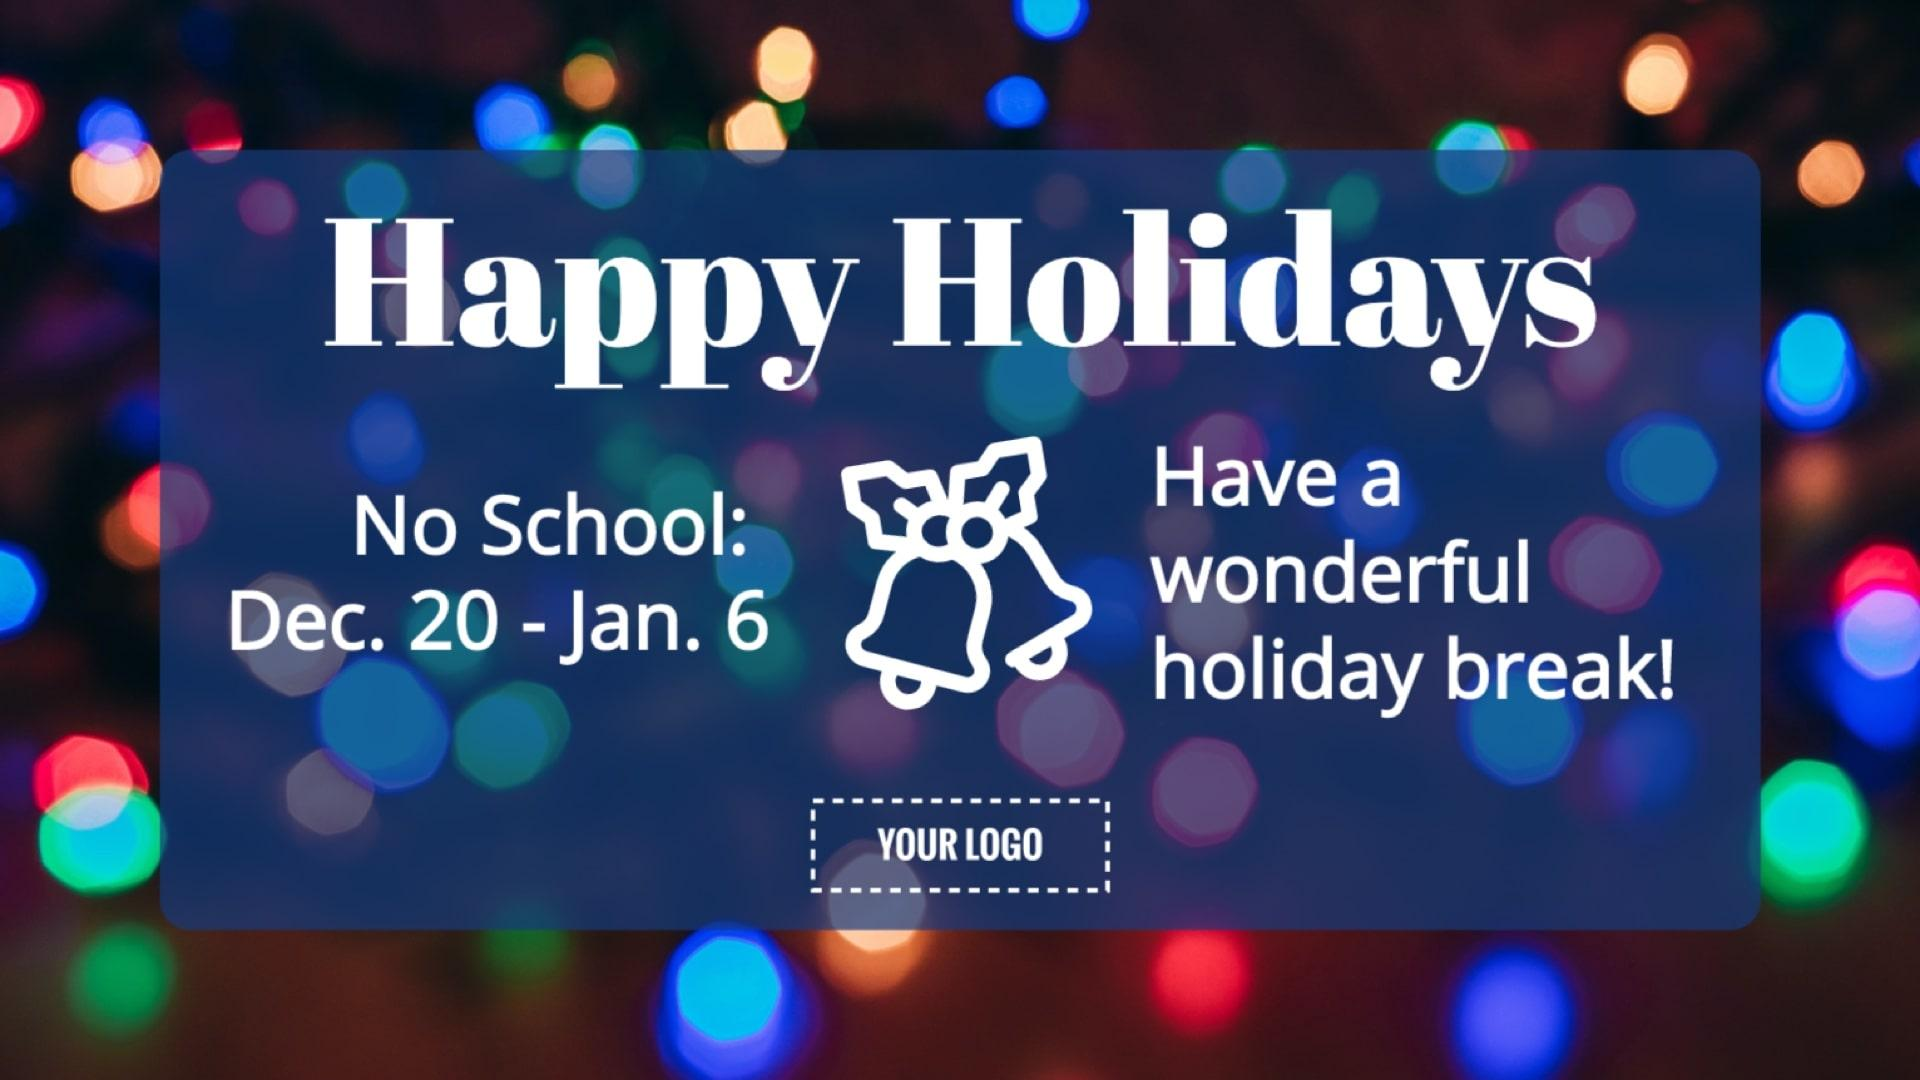 Holiday Break Digital Signage Template